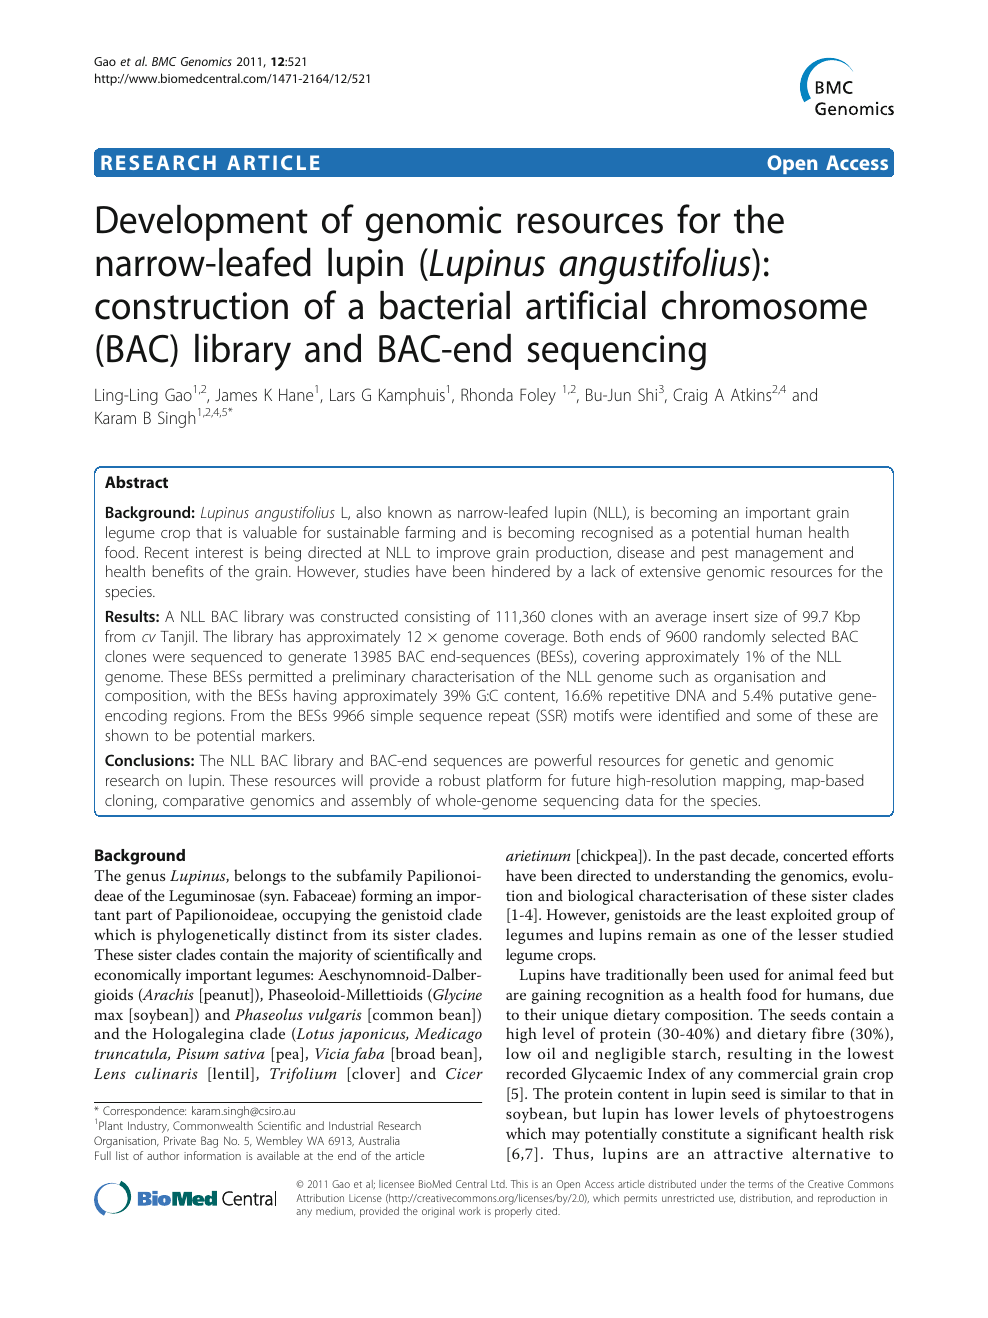 Development of genomic resources for the narrow-leafed lupin